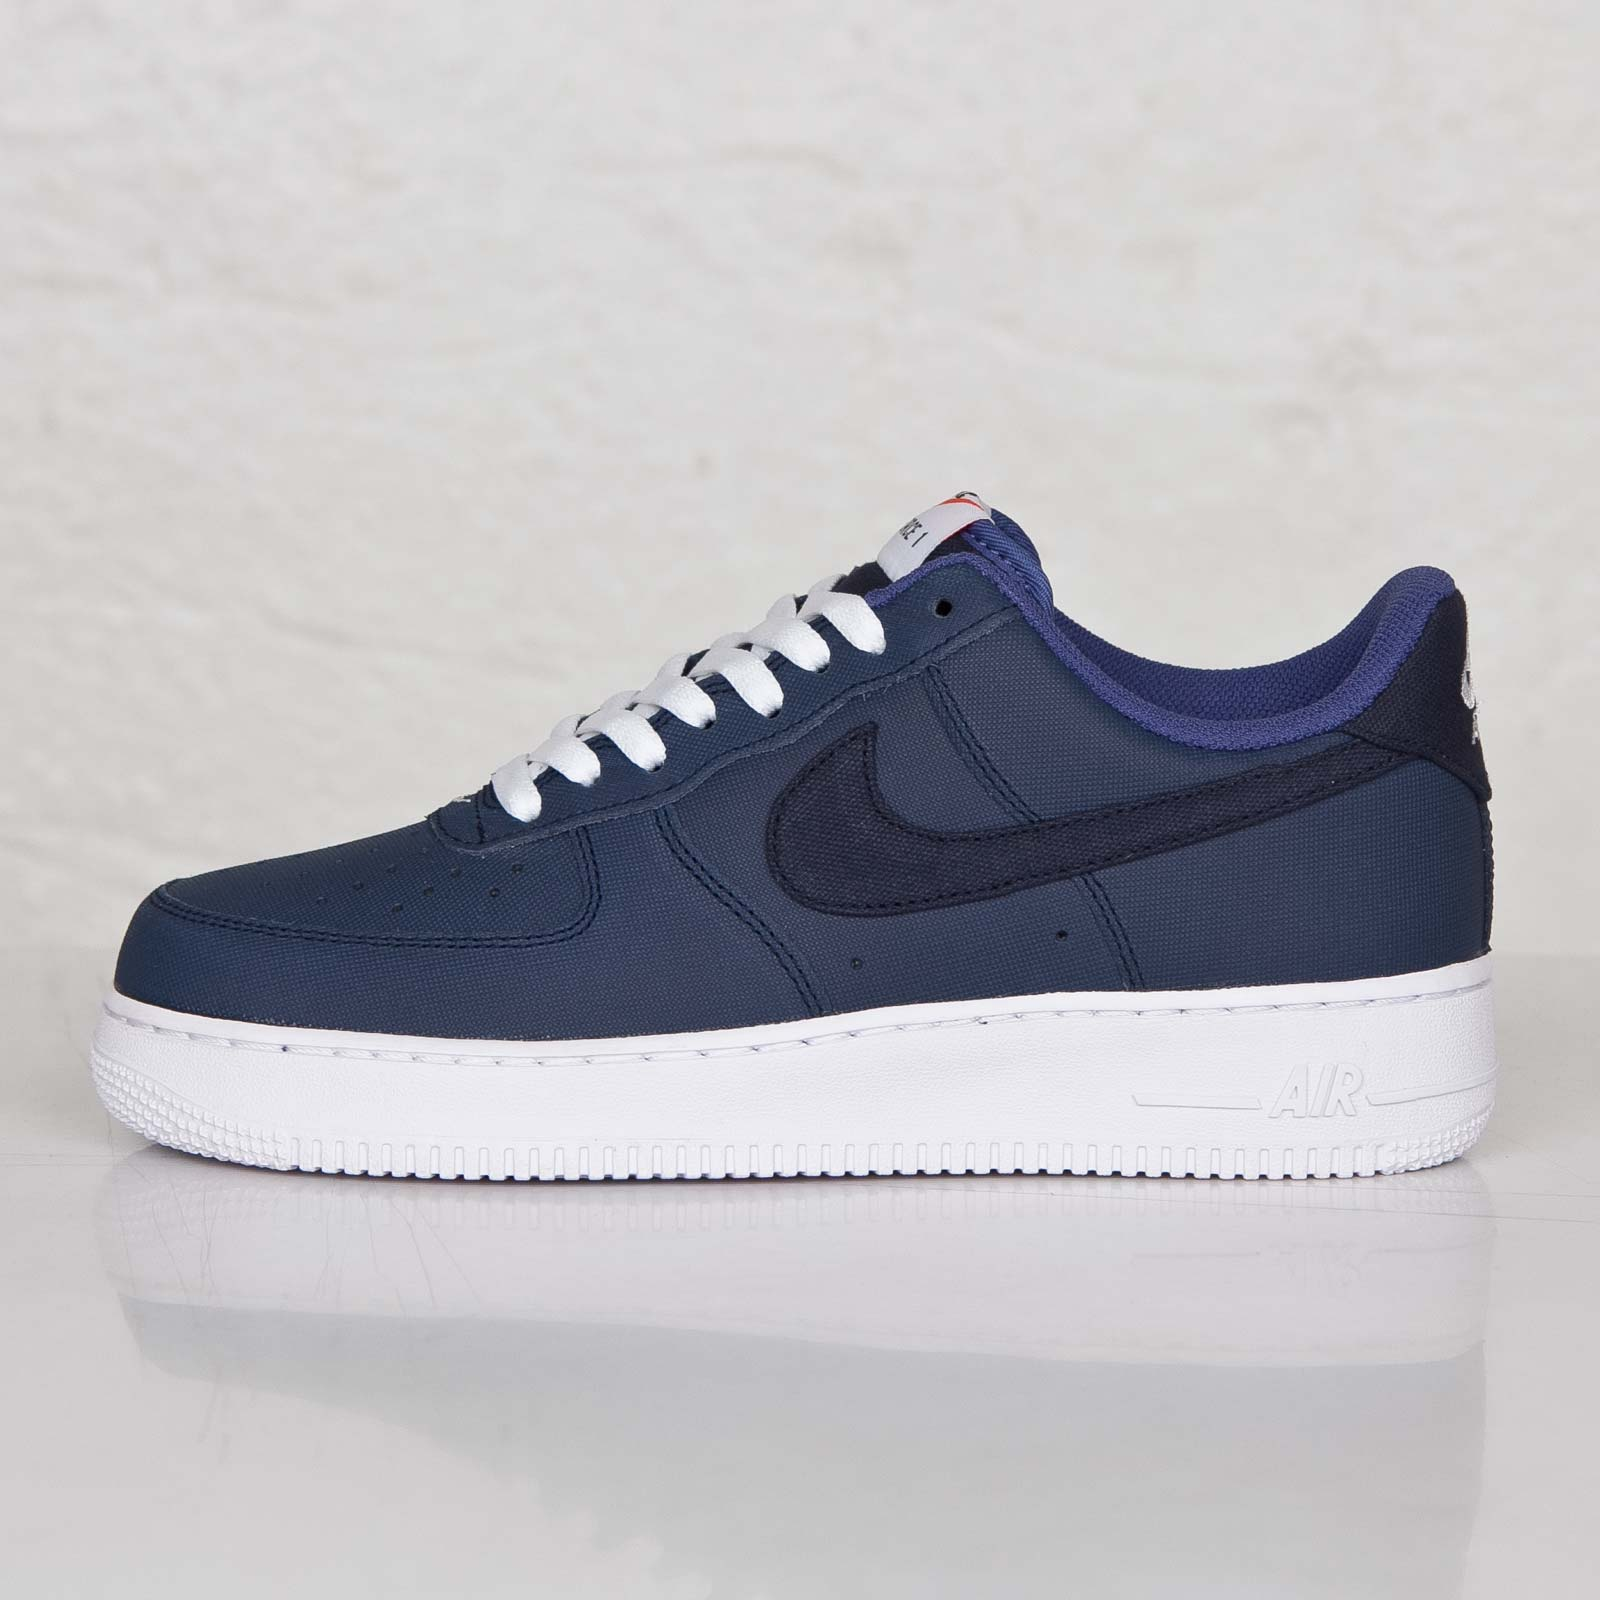 nike air force 1 low obsidian white blue legend air 23 air jordan release dates. Black Bedroom Furniture Sets. Home Design Ideas